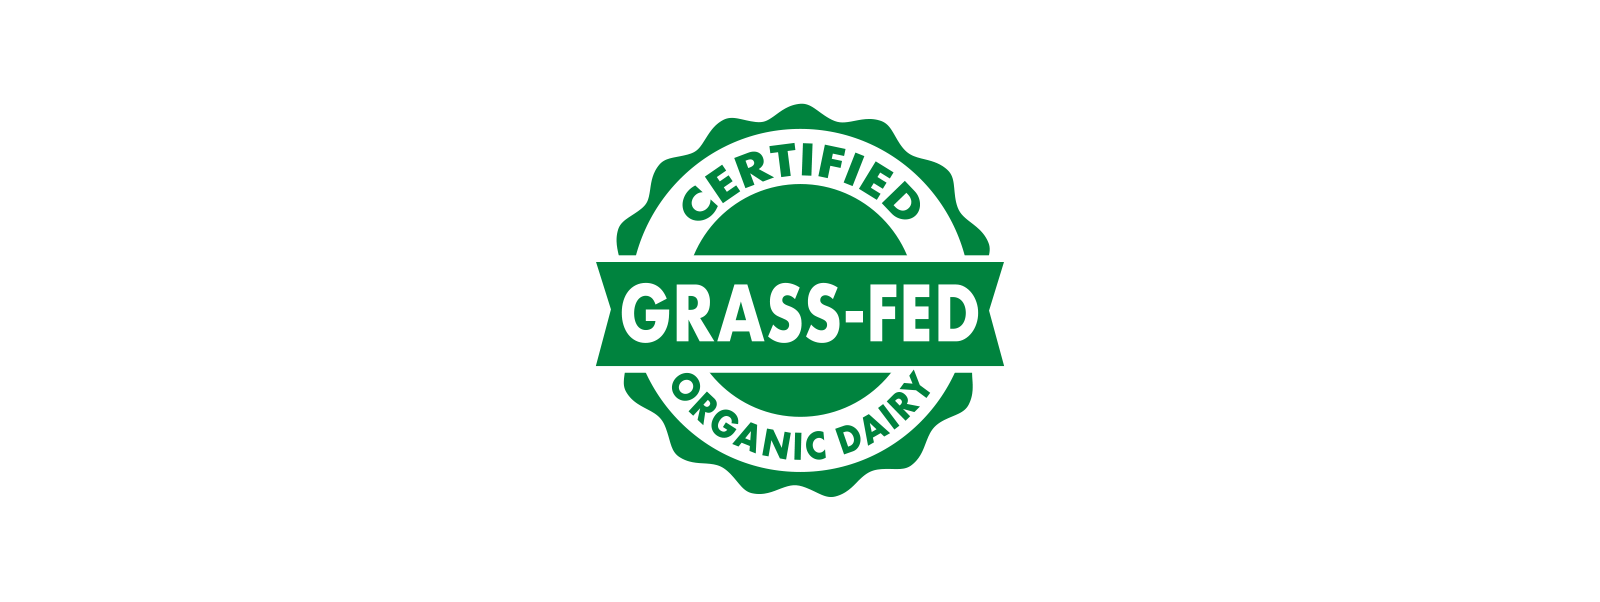 The green and white certified grass-fed organic dairy seal.